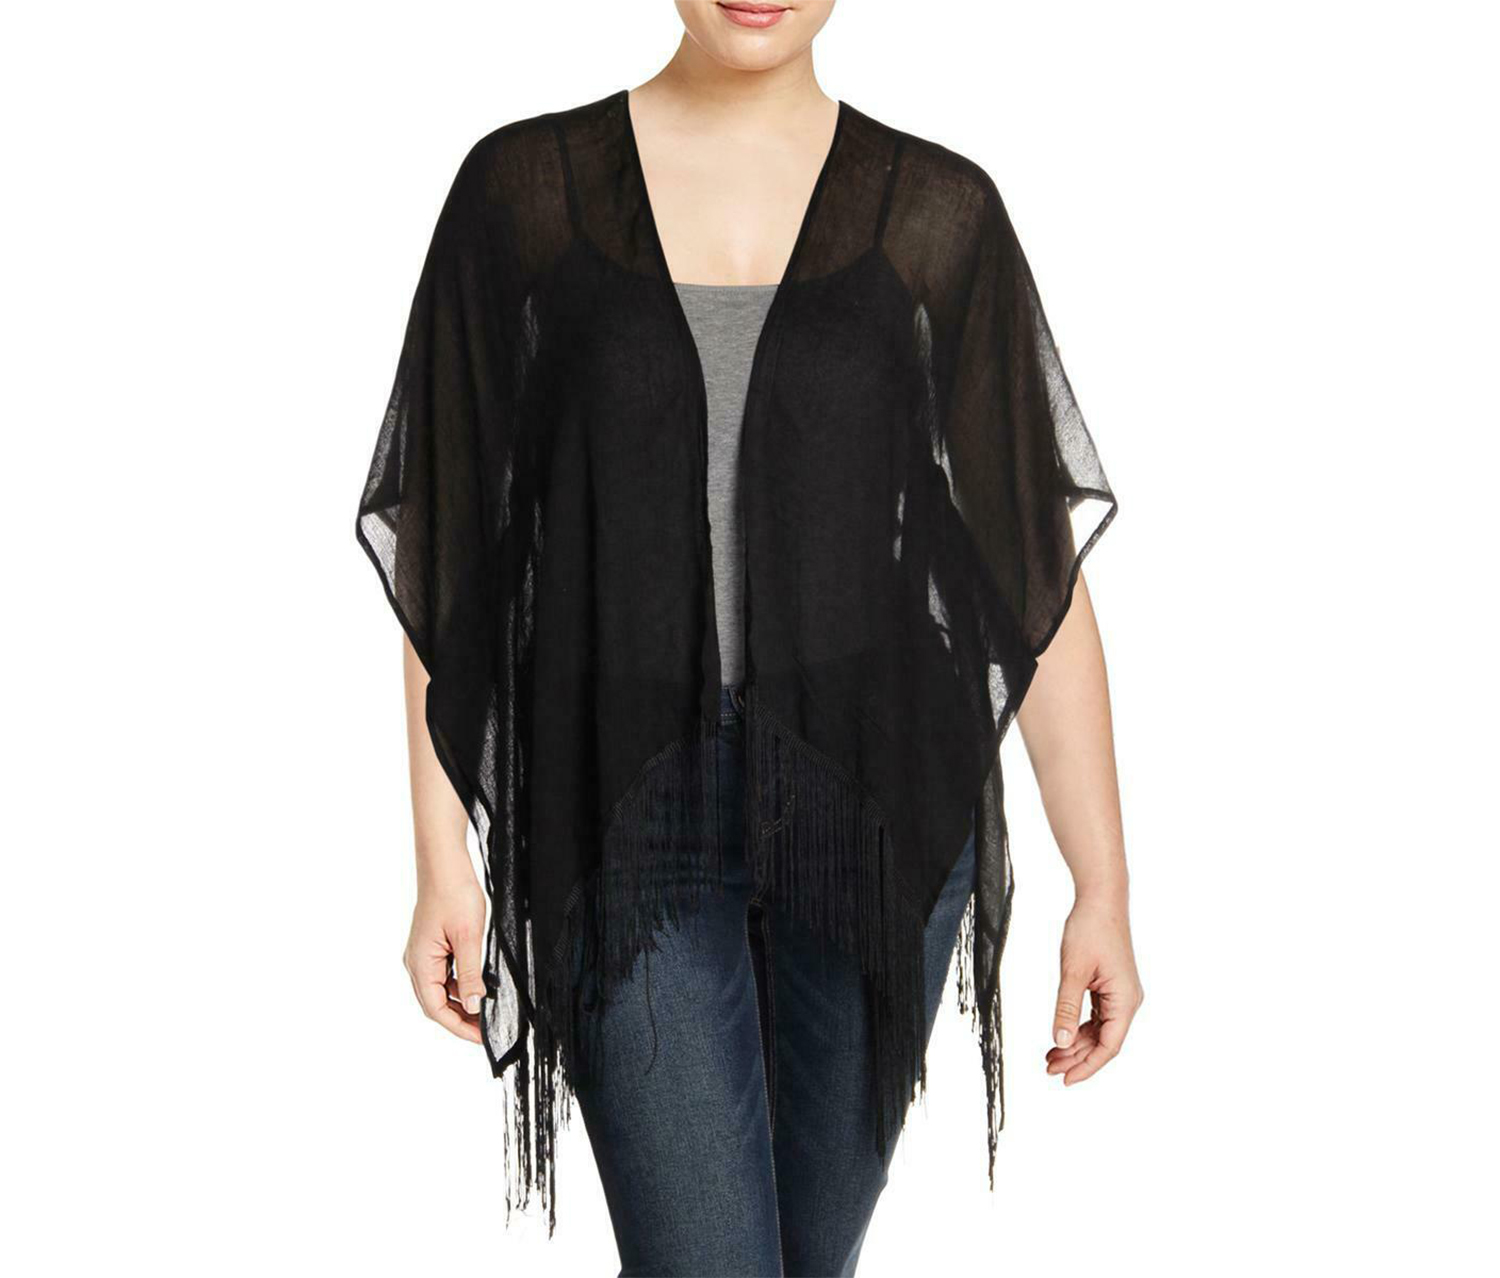 Bcbgeneration Women's Tropic Spirit Solid Kimono, Black